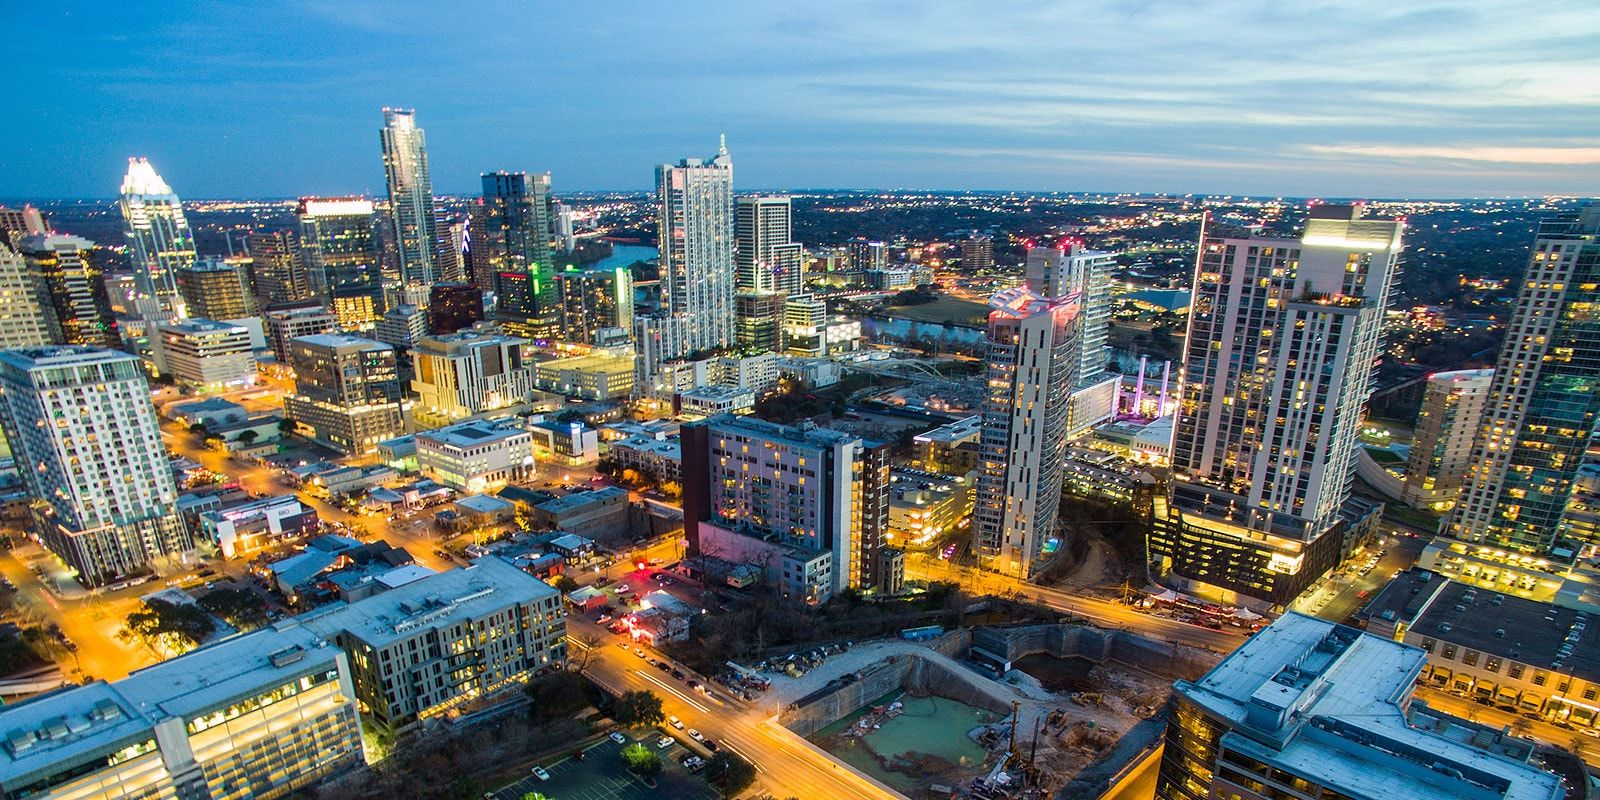 Night Cityscape of Austin